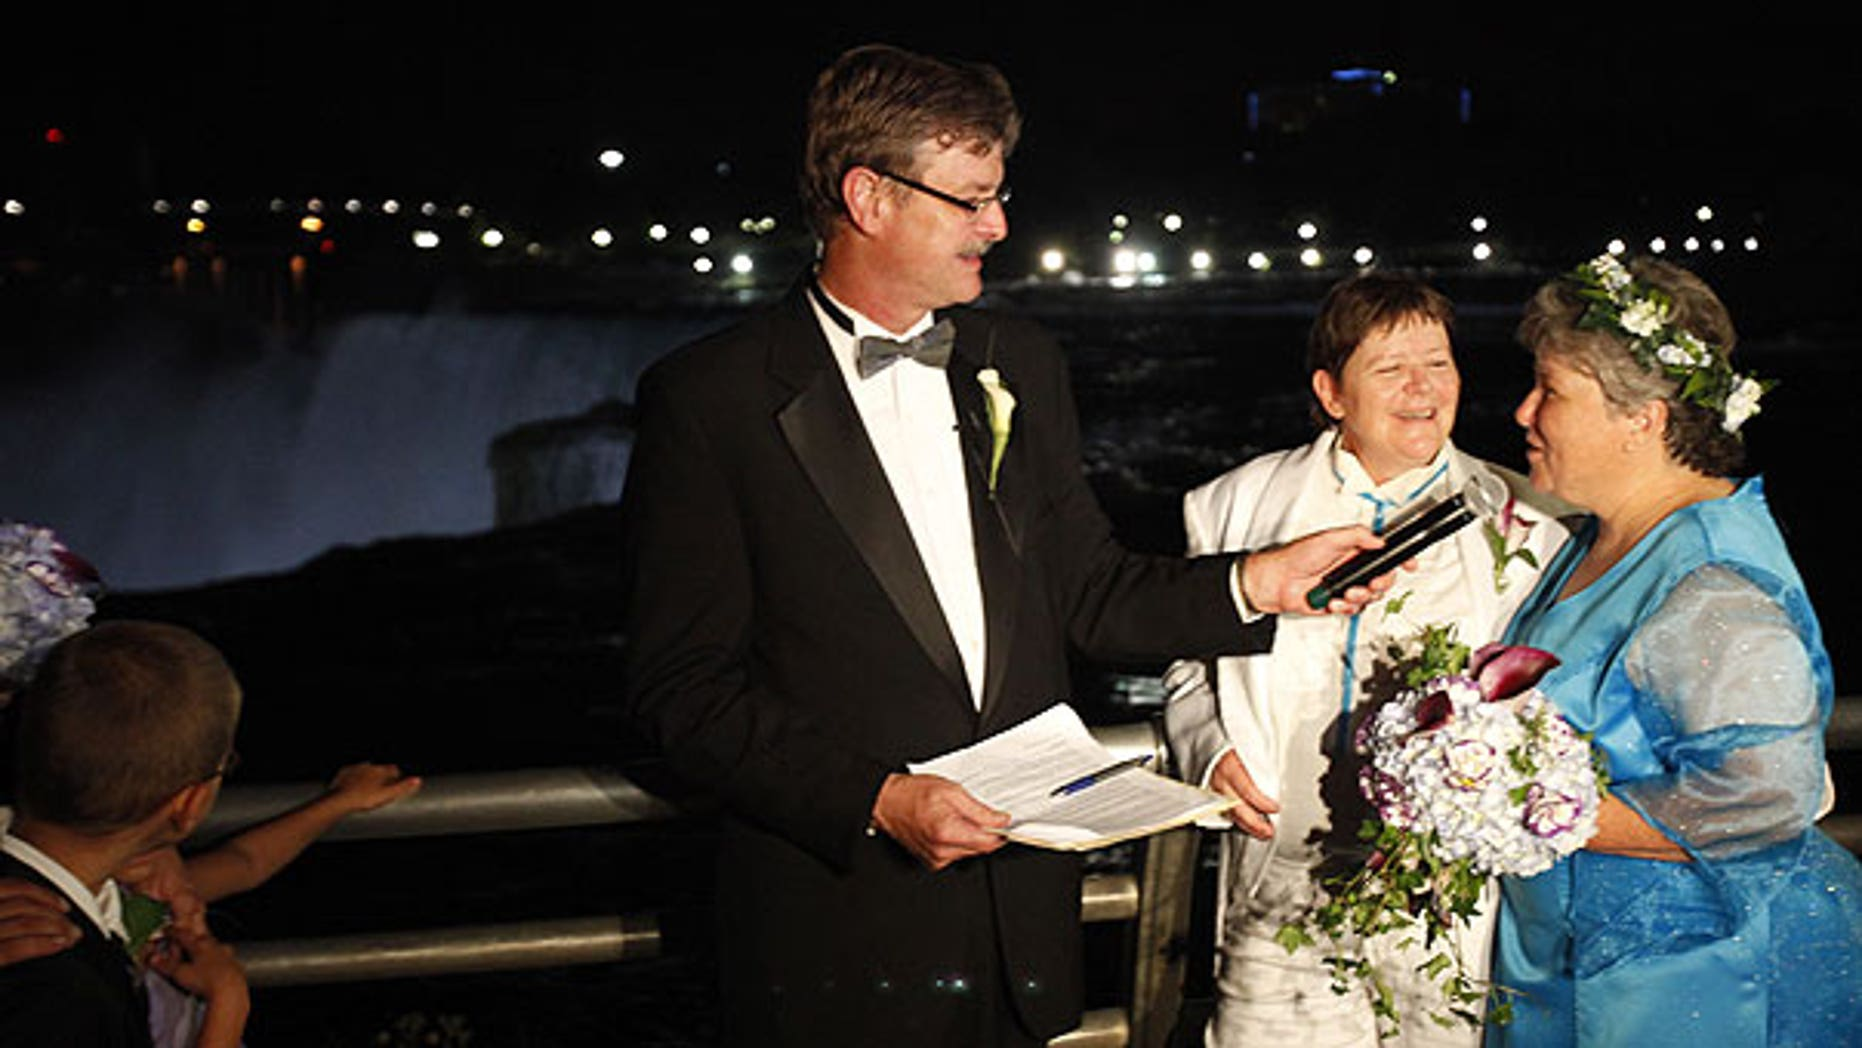 July 24: Kitty Lambert, right, and Cheryle Rudd are married by Niagara Falls Mayor Paul Dyster, left, in Niagara Falls, N.Y.